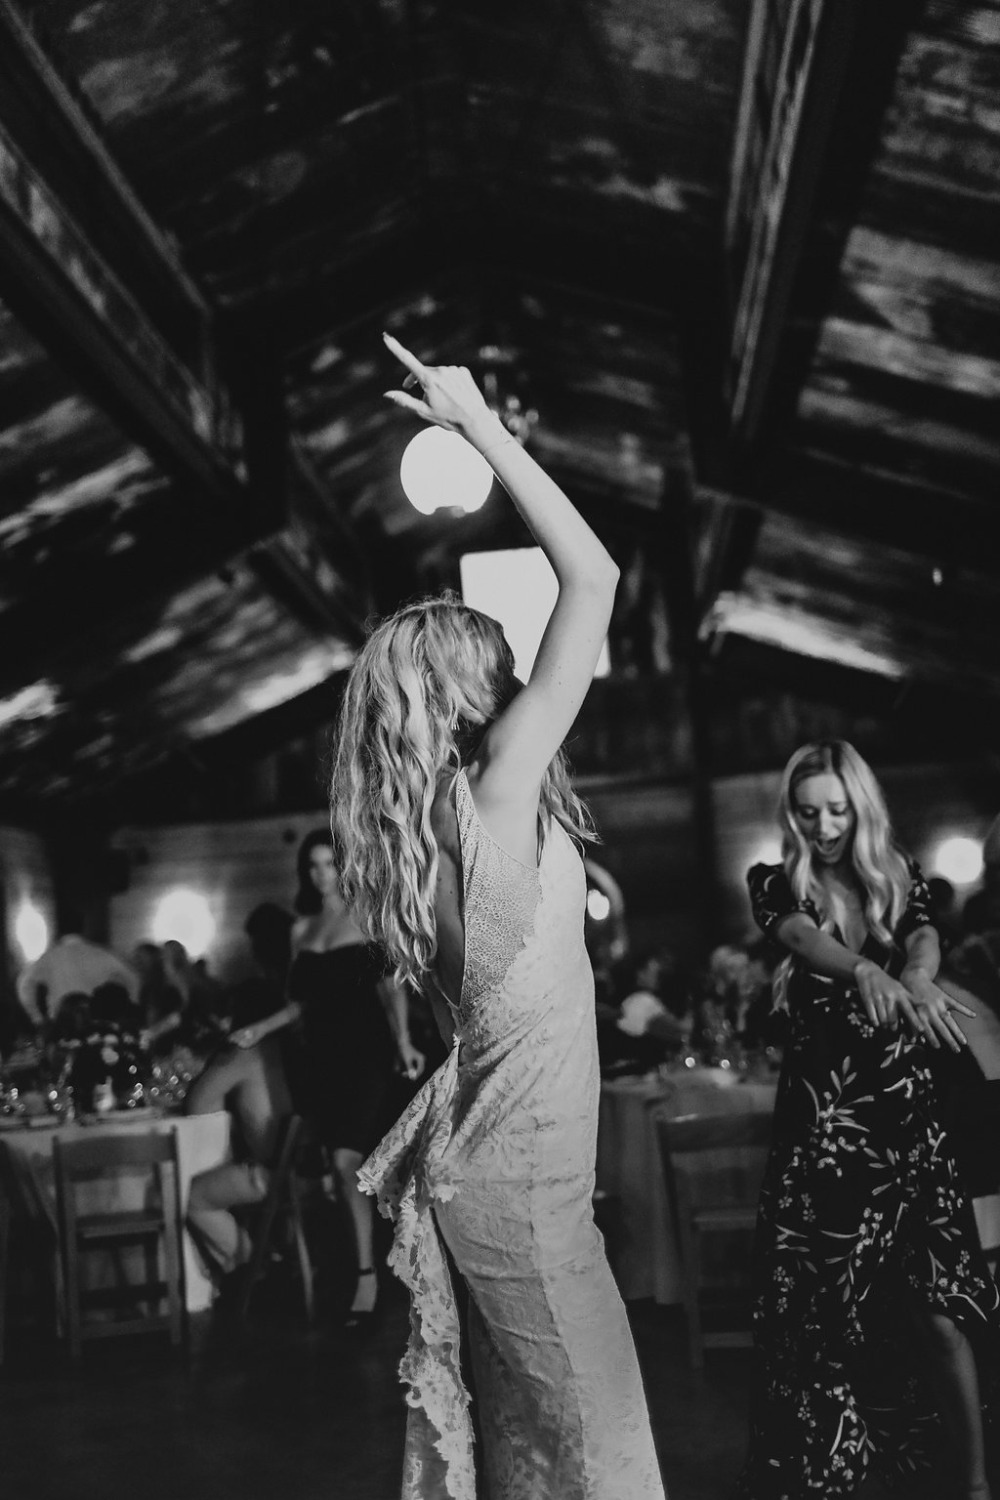 bride having a great time on the dance floor